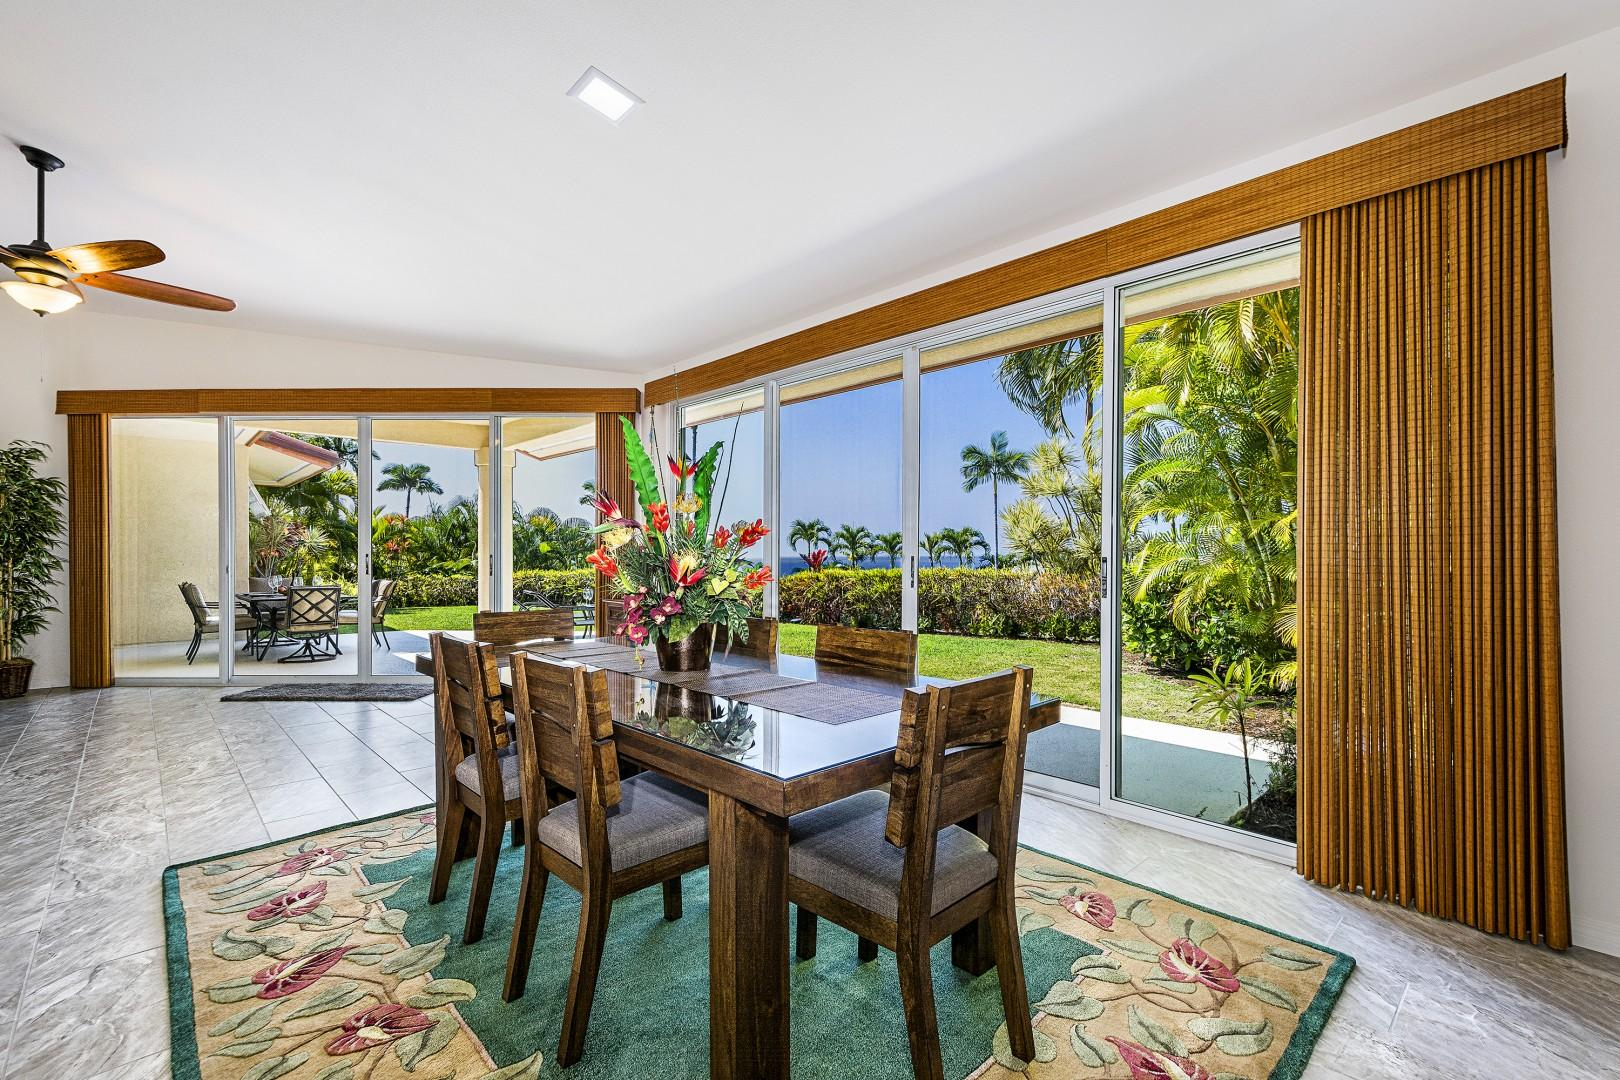 Sliding doors on the ocean side bring nature into the dining room